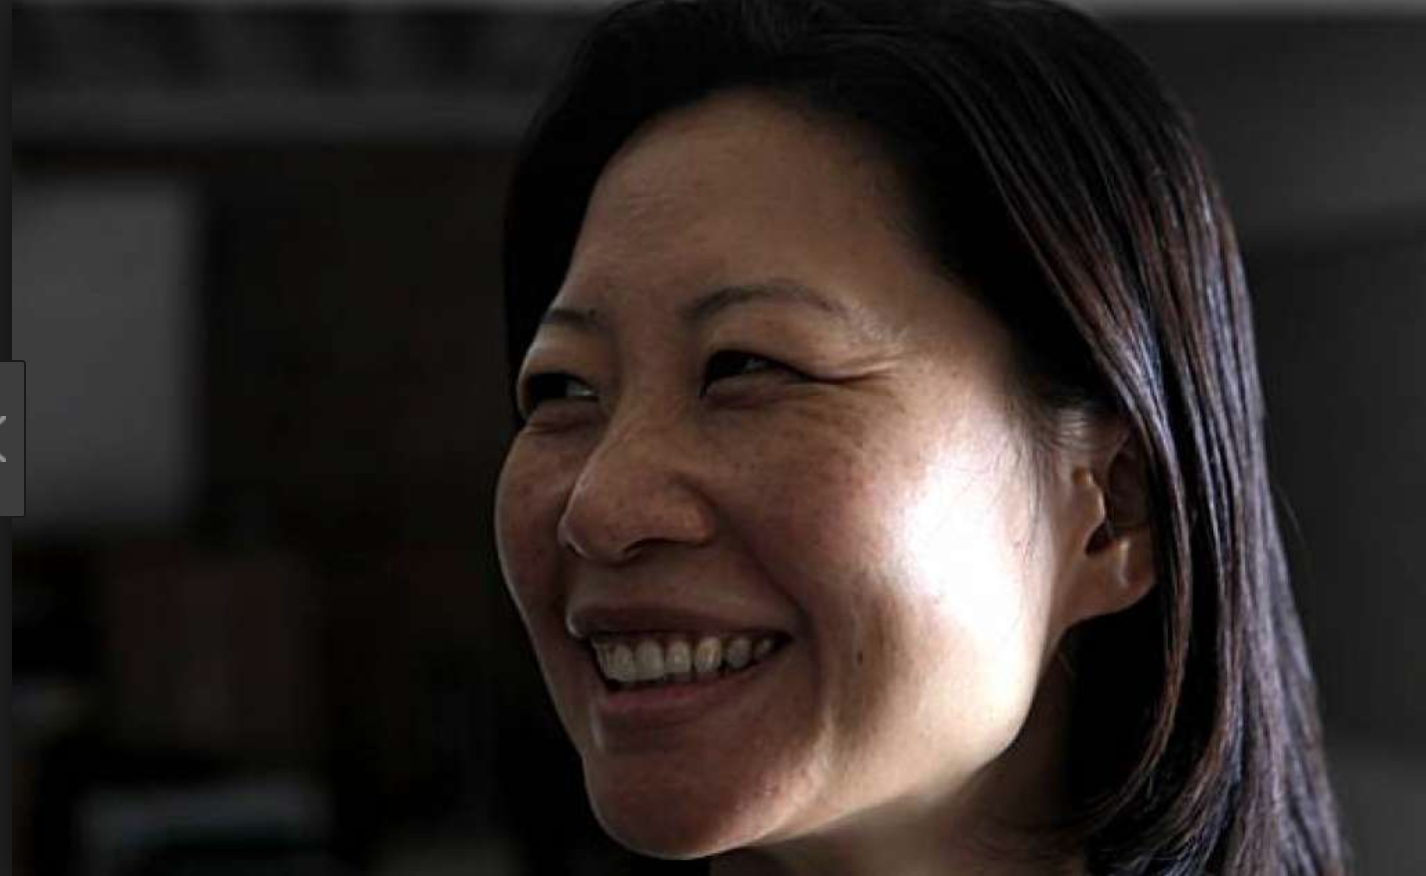 Katalyst.Ventures, a new firm led by Susan Choe, has raised $34 million